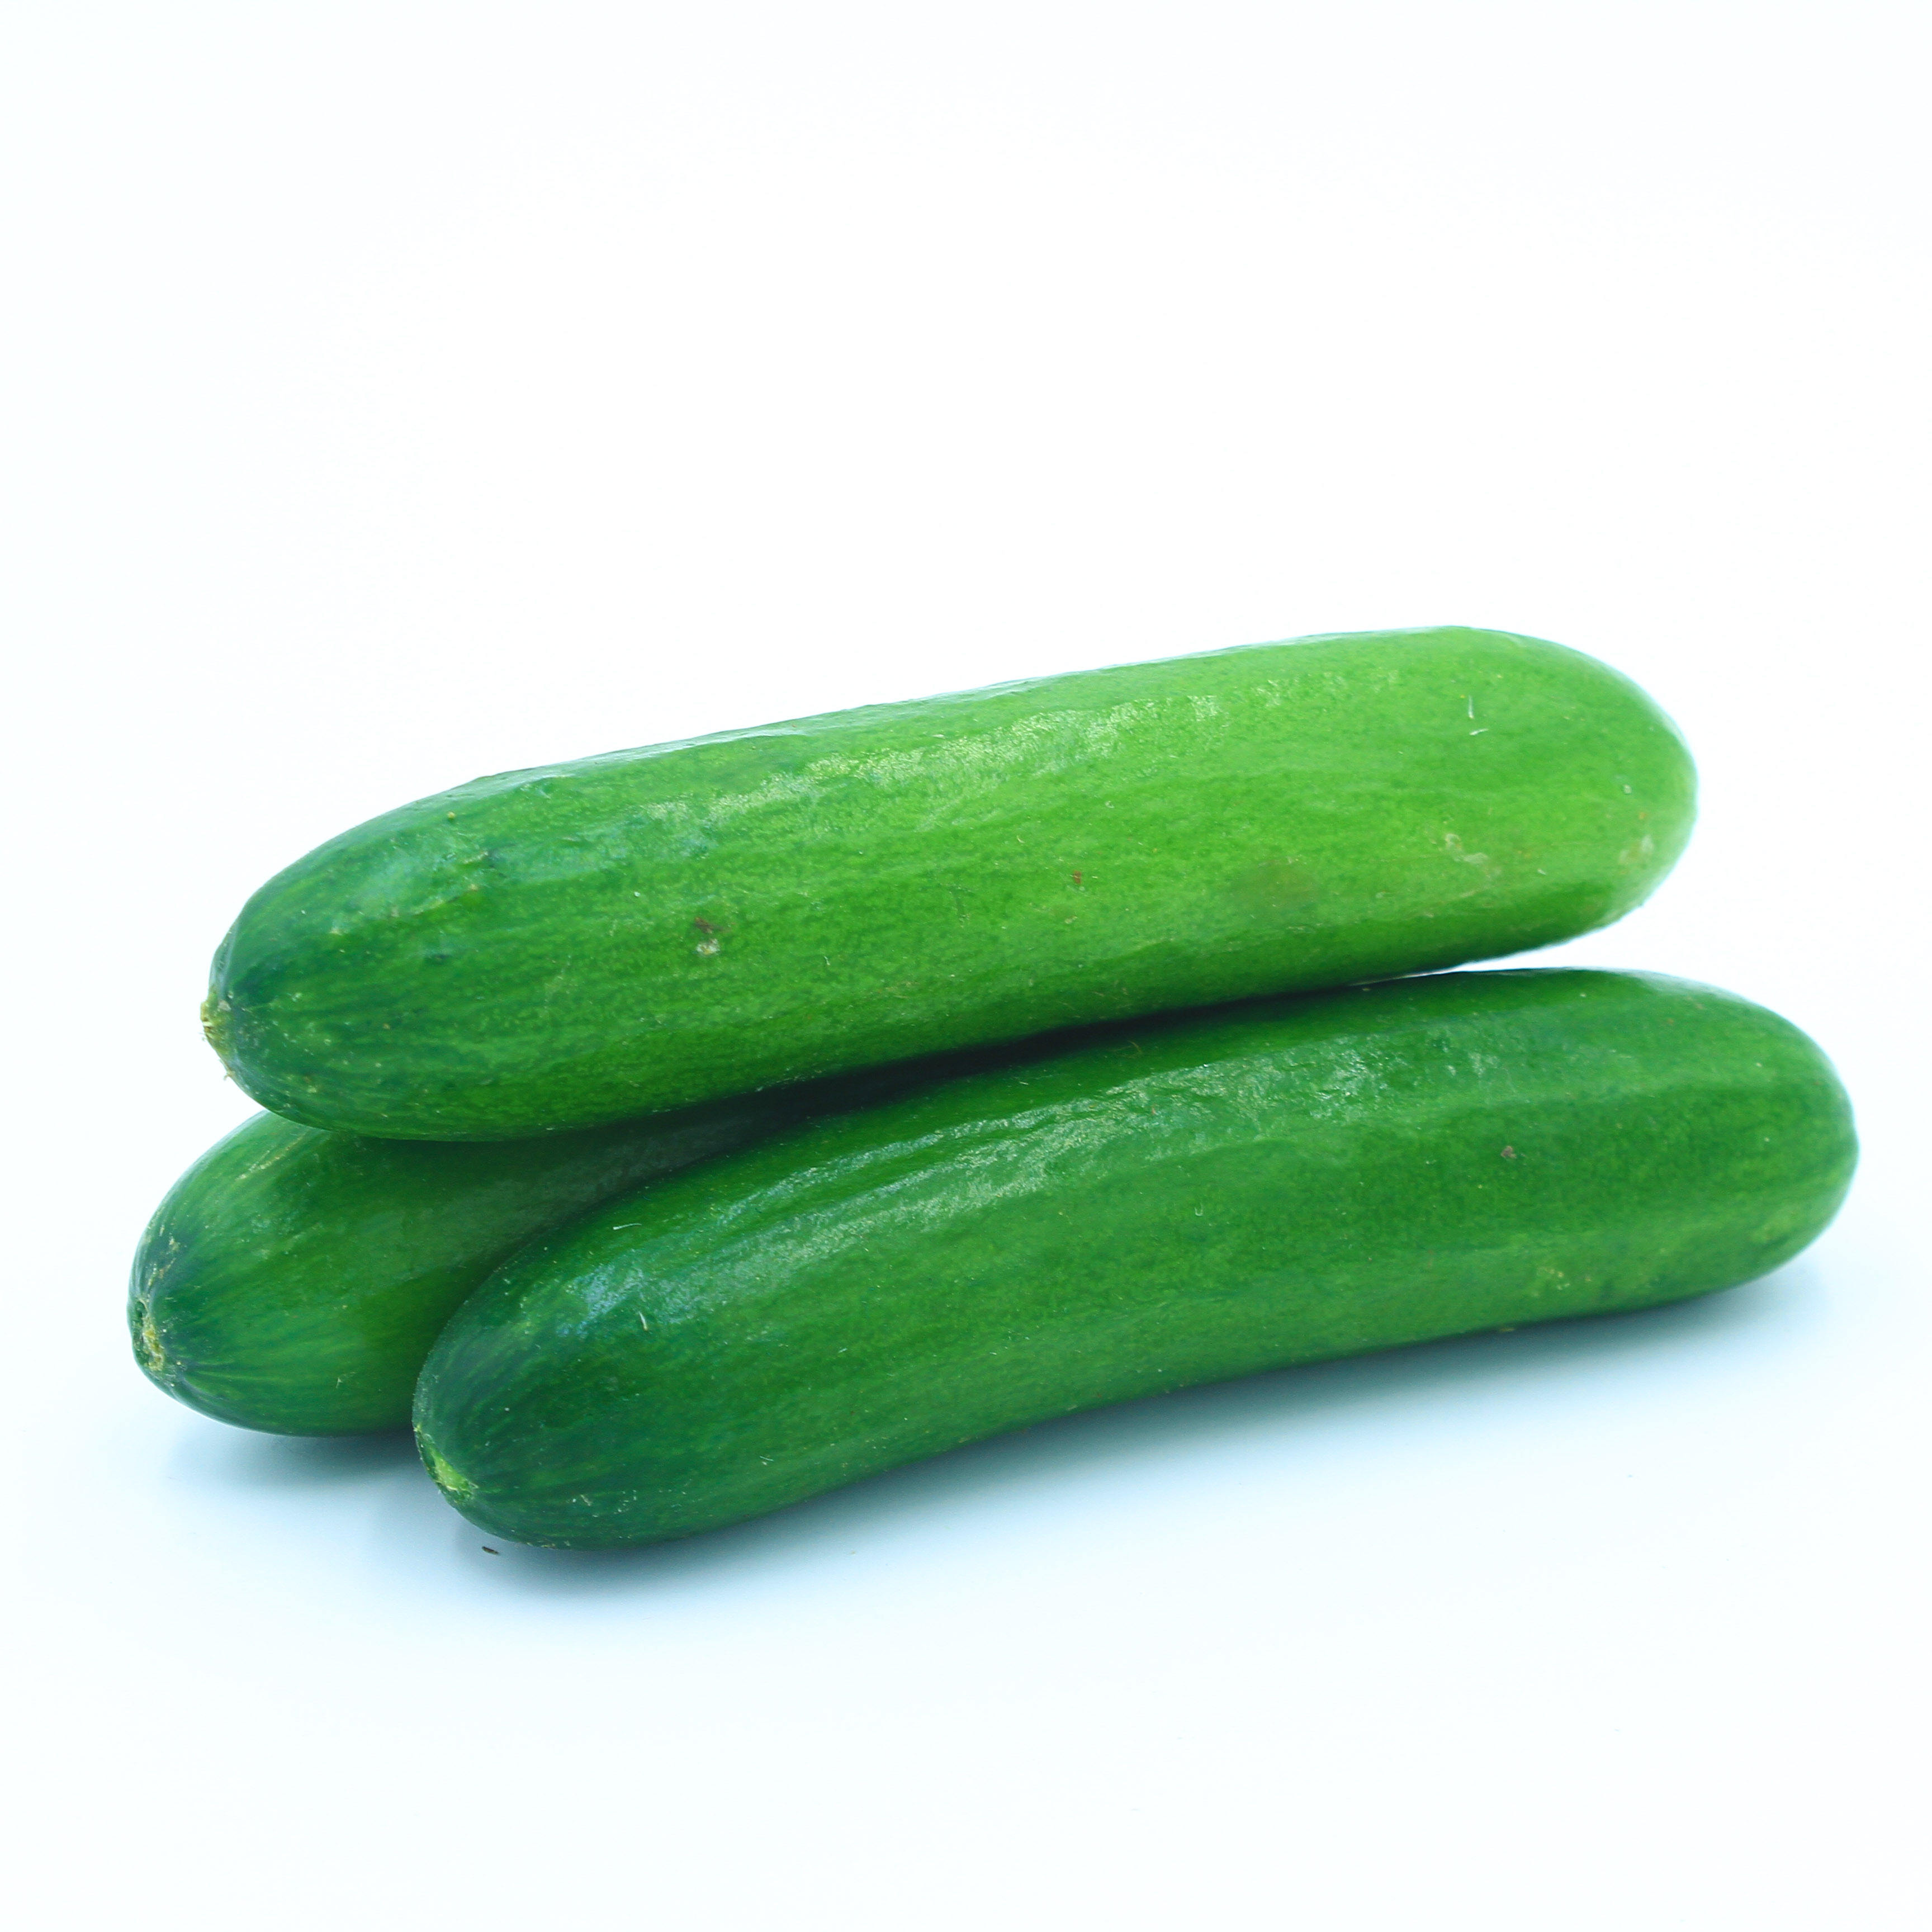 Fresh Cucumber for sale